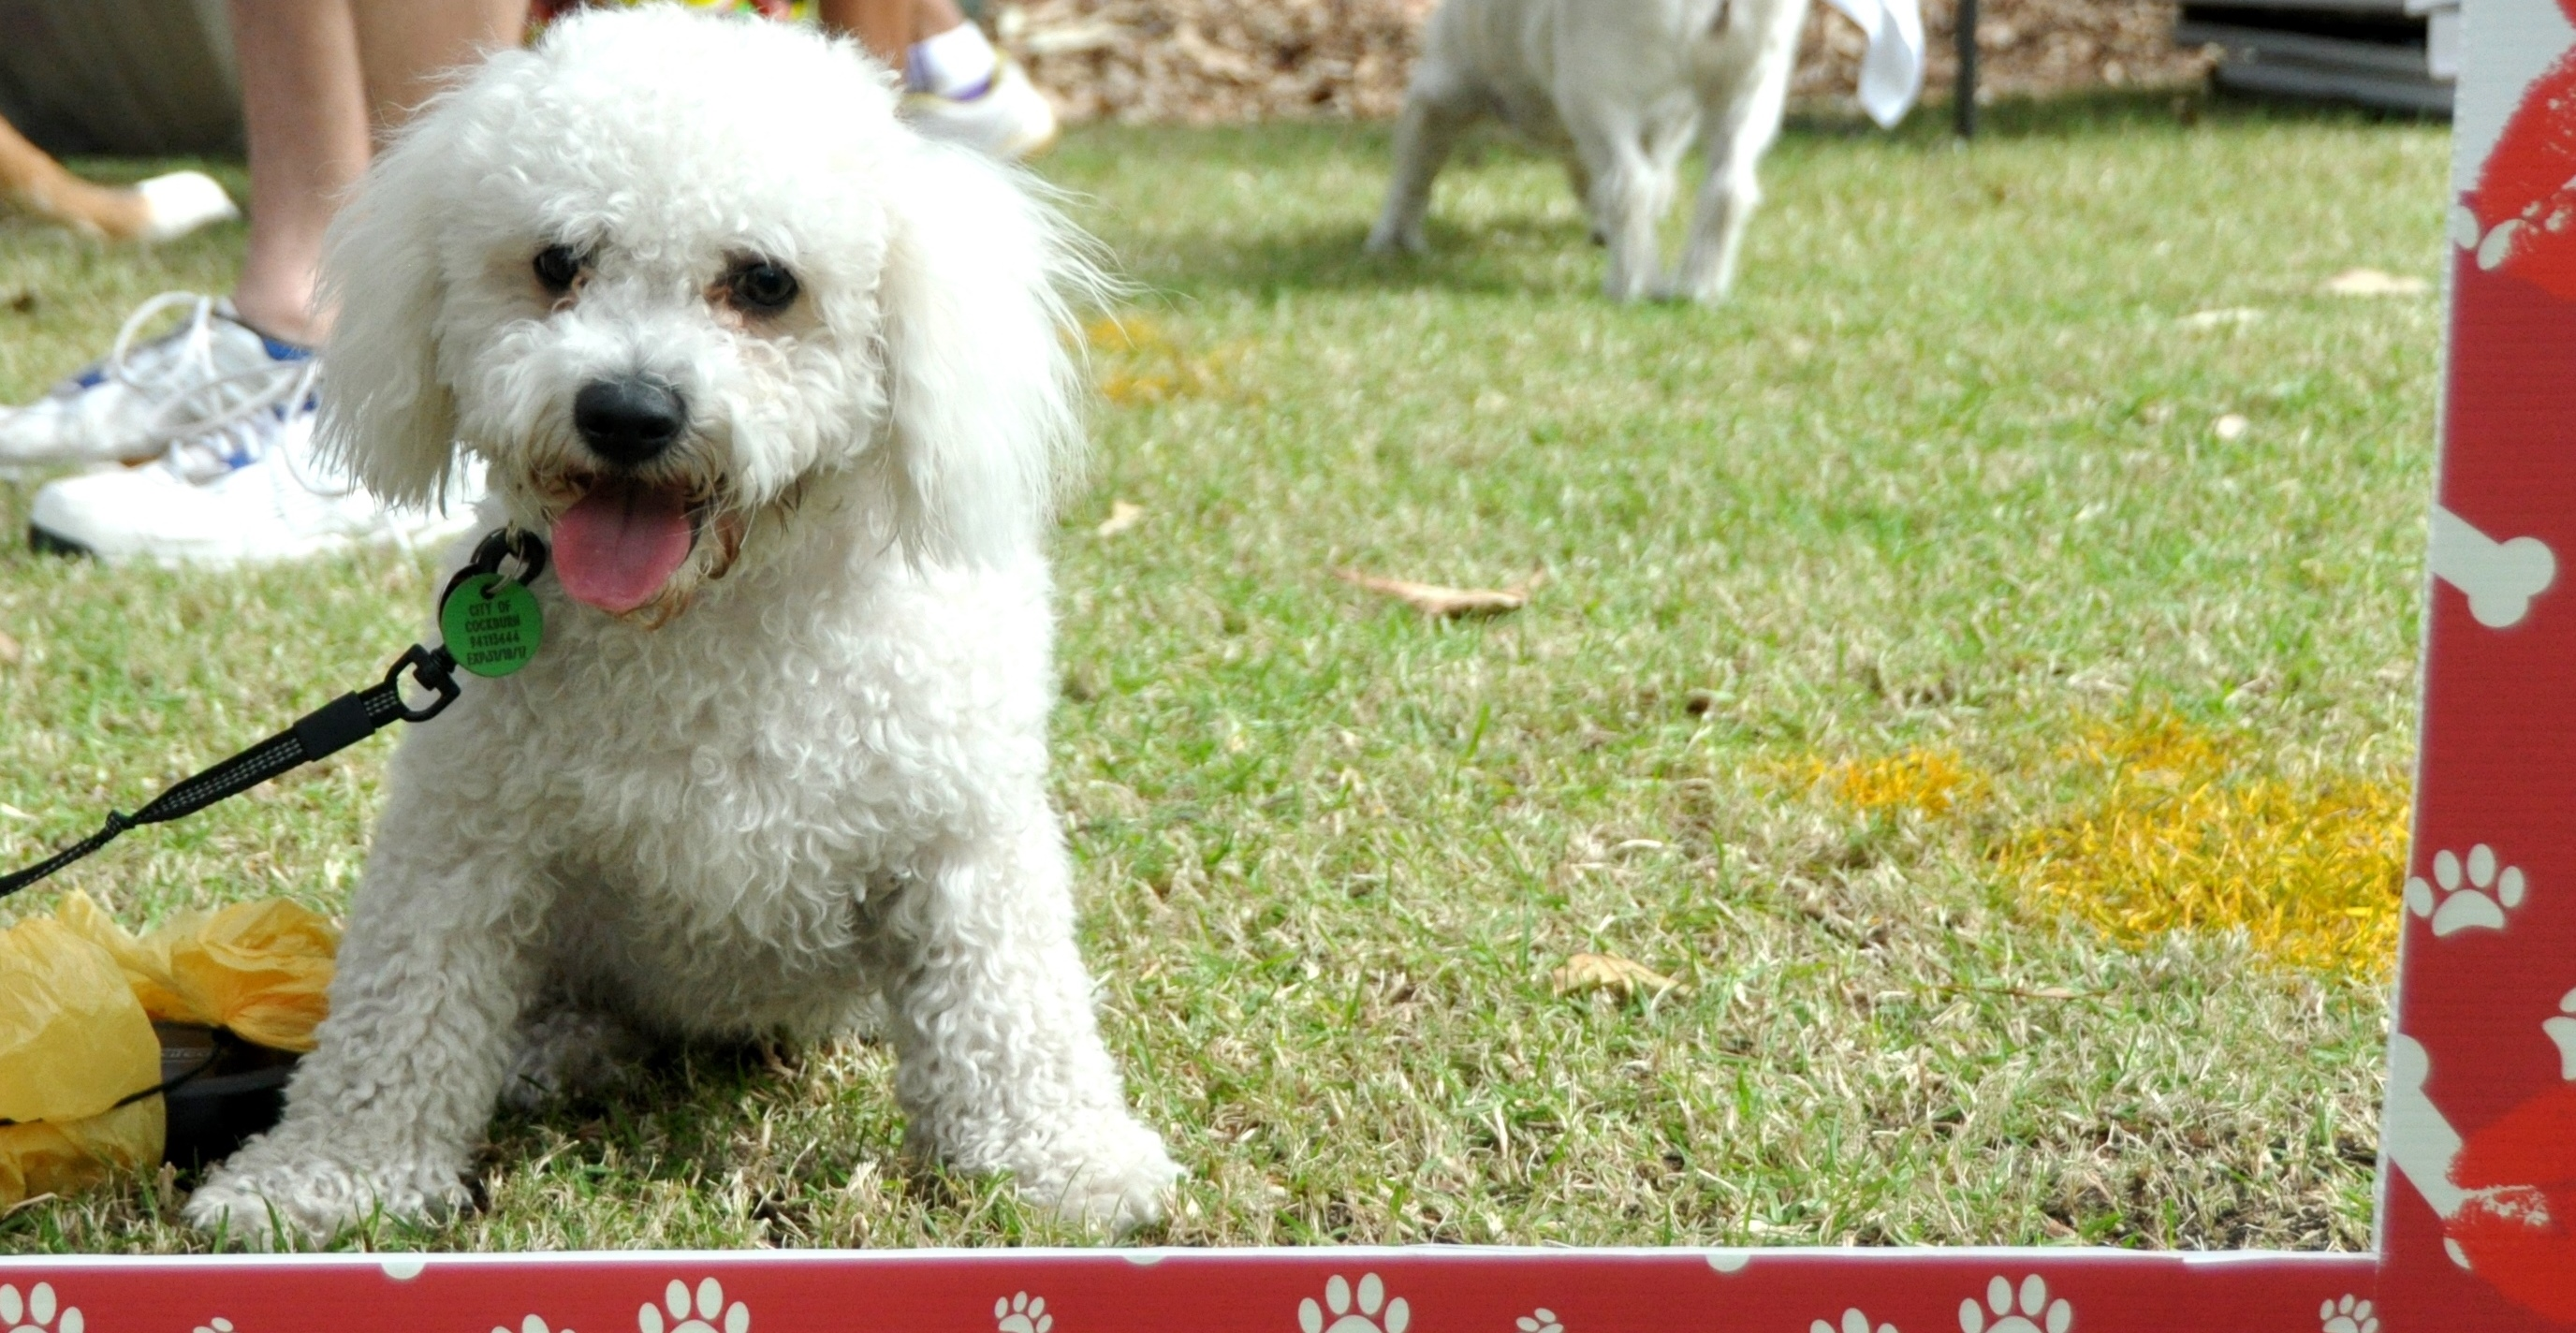 Coogee Dog Friendly Parks